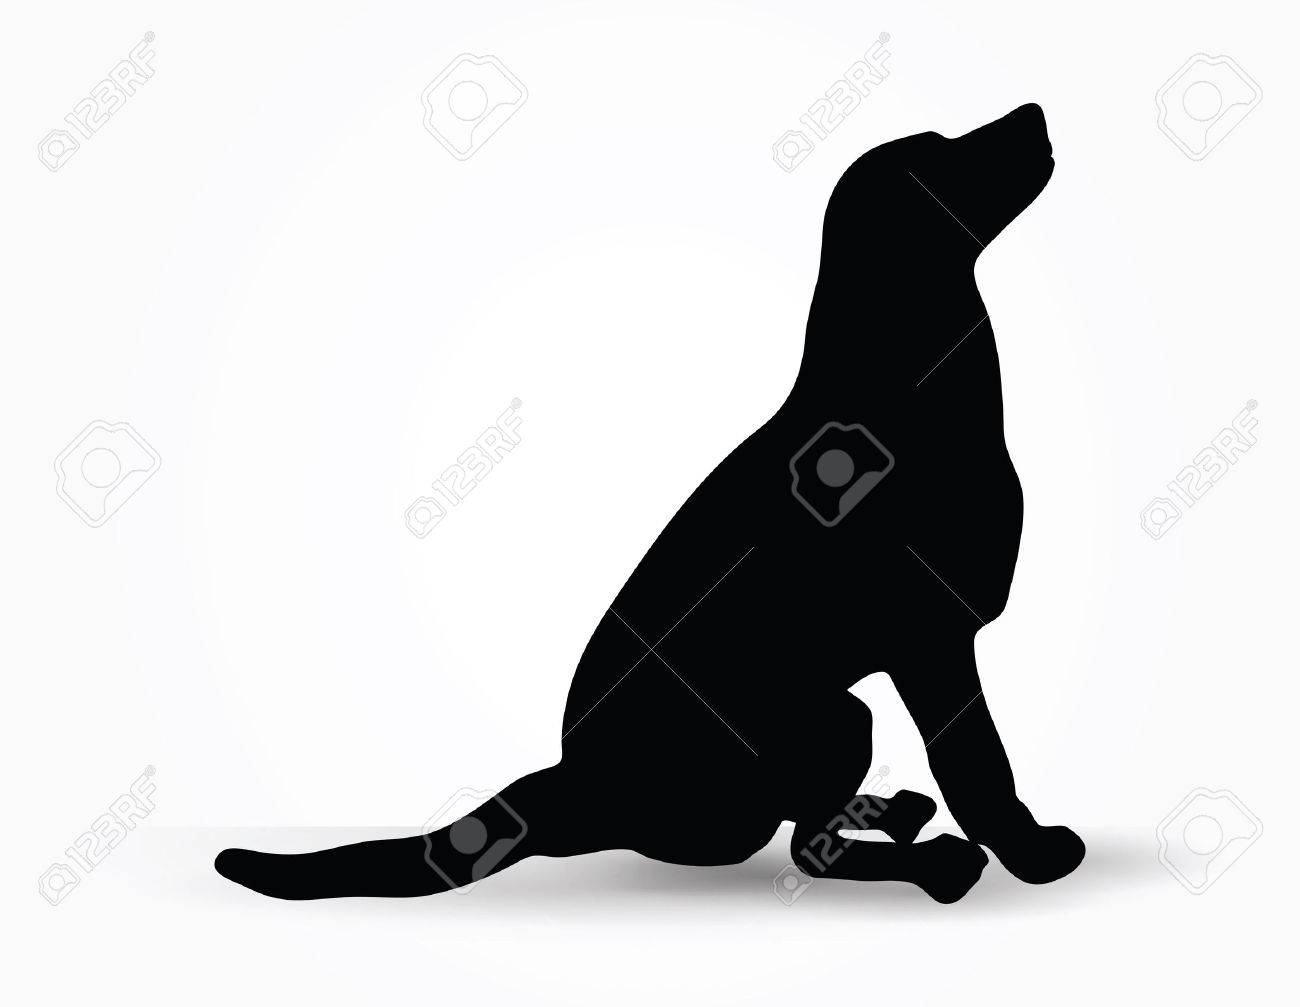 vector image dog silhouette in default pose isolated on white